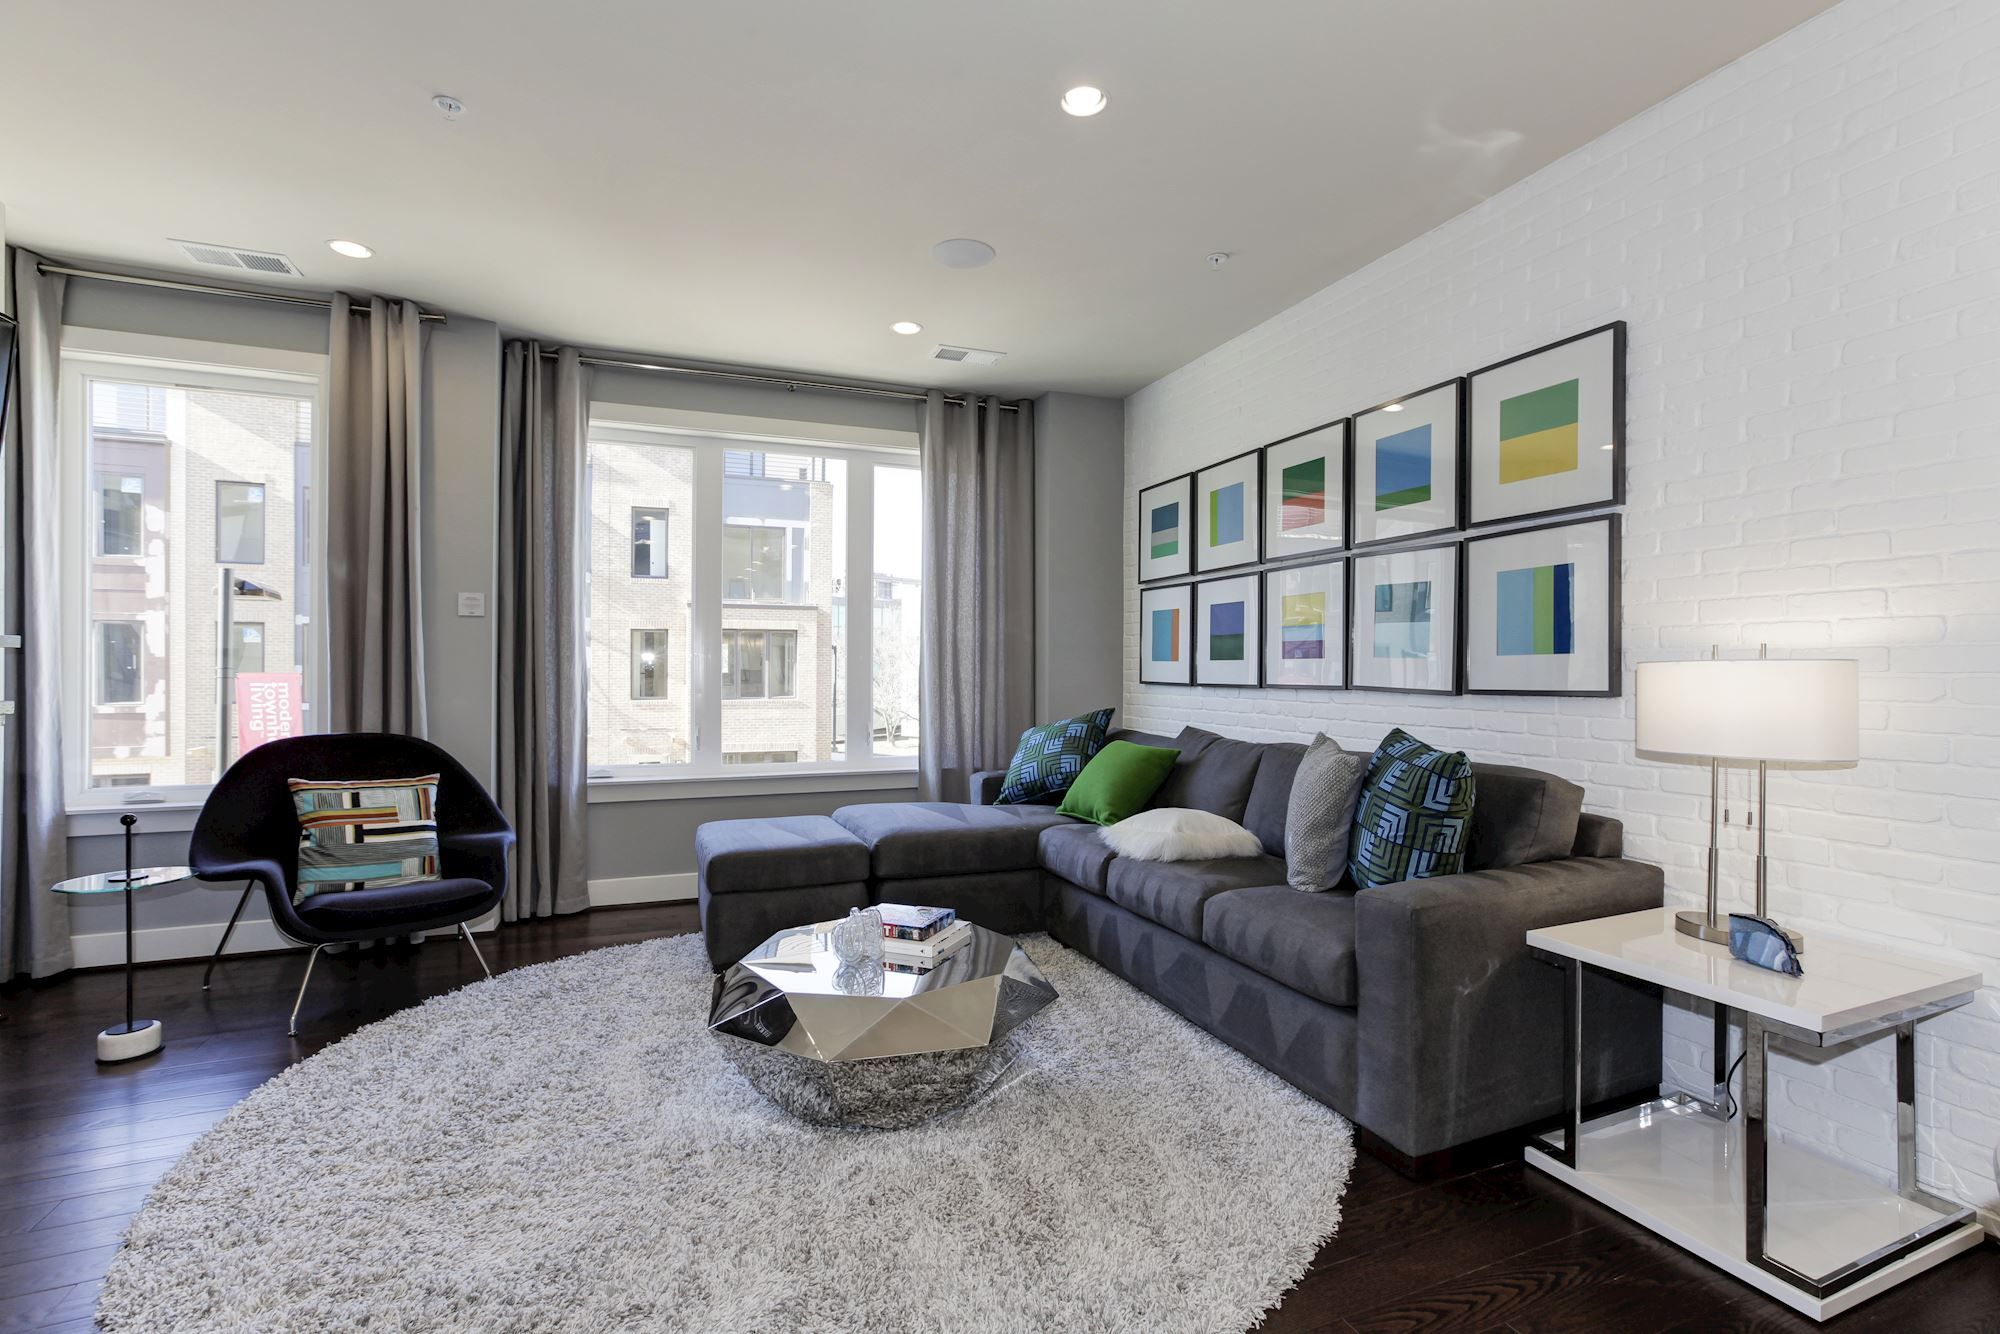 Sample Modern Blue And Gray Living Room With Glass Geometric Focal Table In Our Daniel Model At Montgo Living Room Grey Luxury Townhomes Interior Design Styles #sample #of #living #room #design